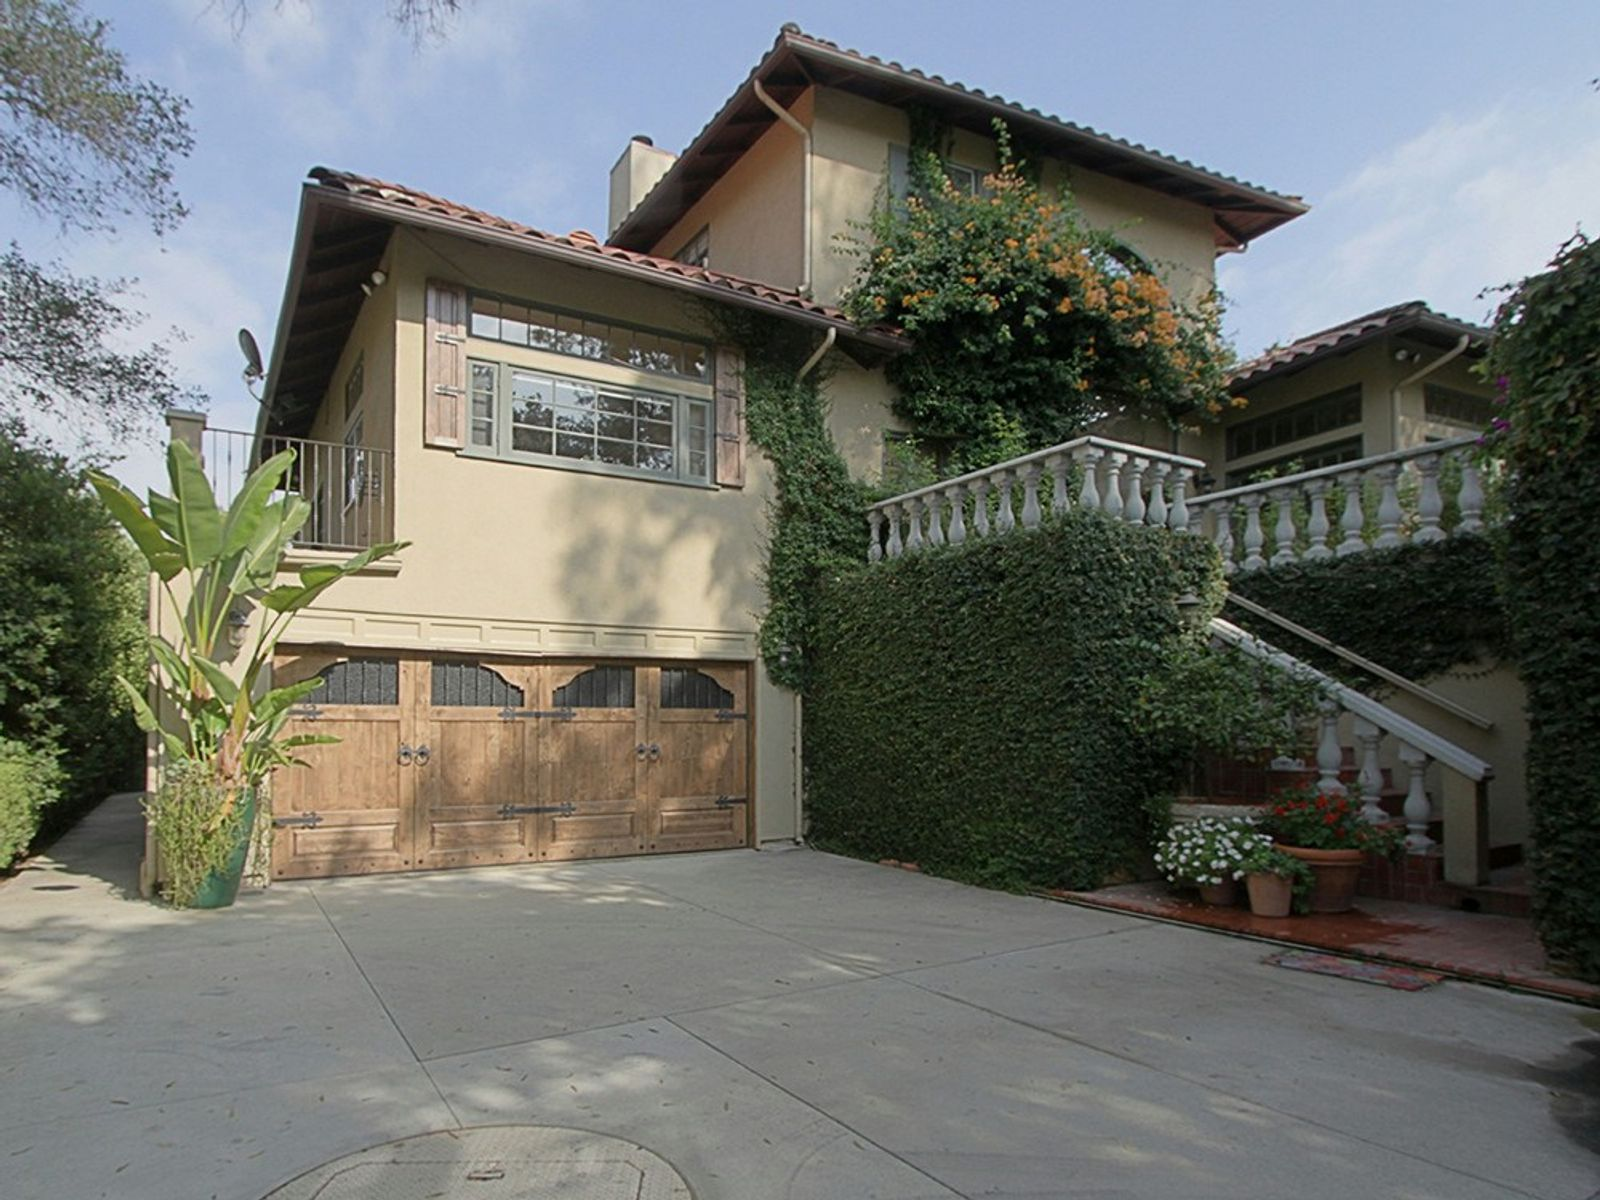 Madison Heights, Pasadena CA Single Family Home - Pasadena Real Estate